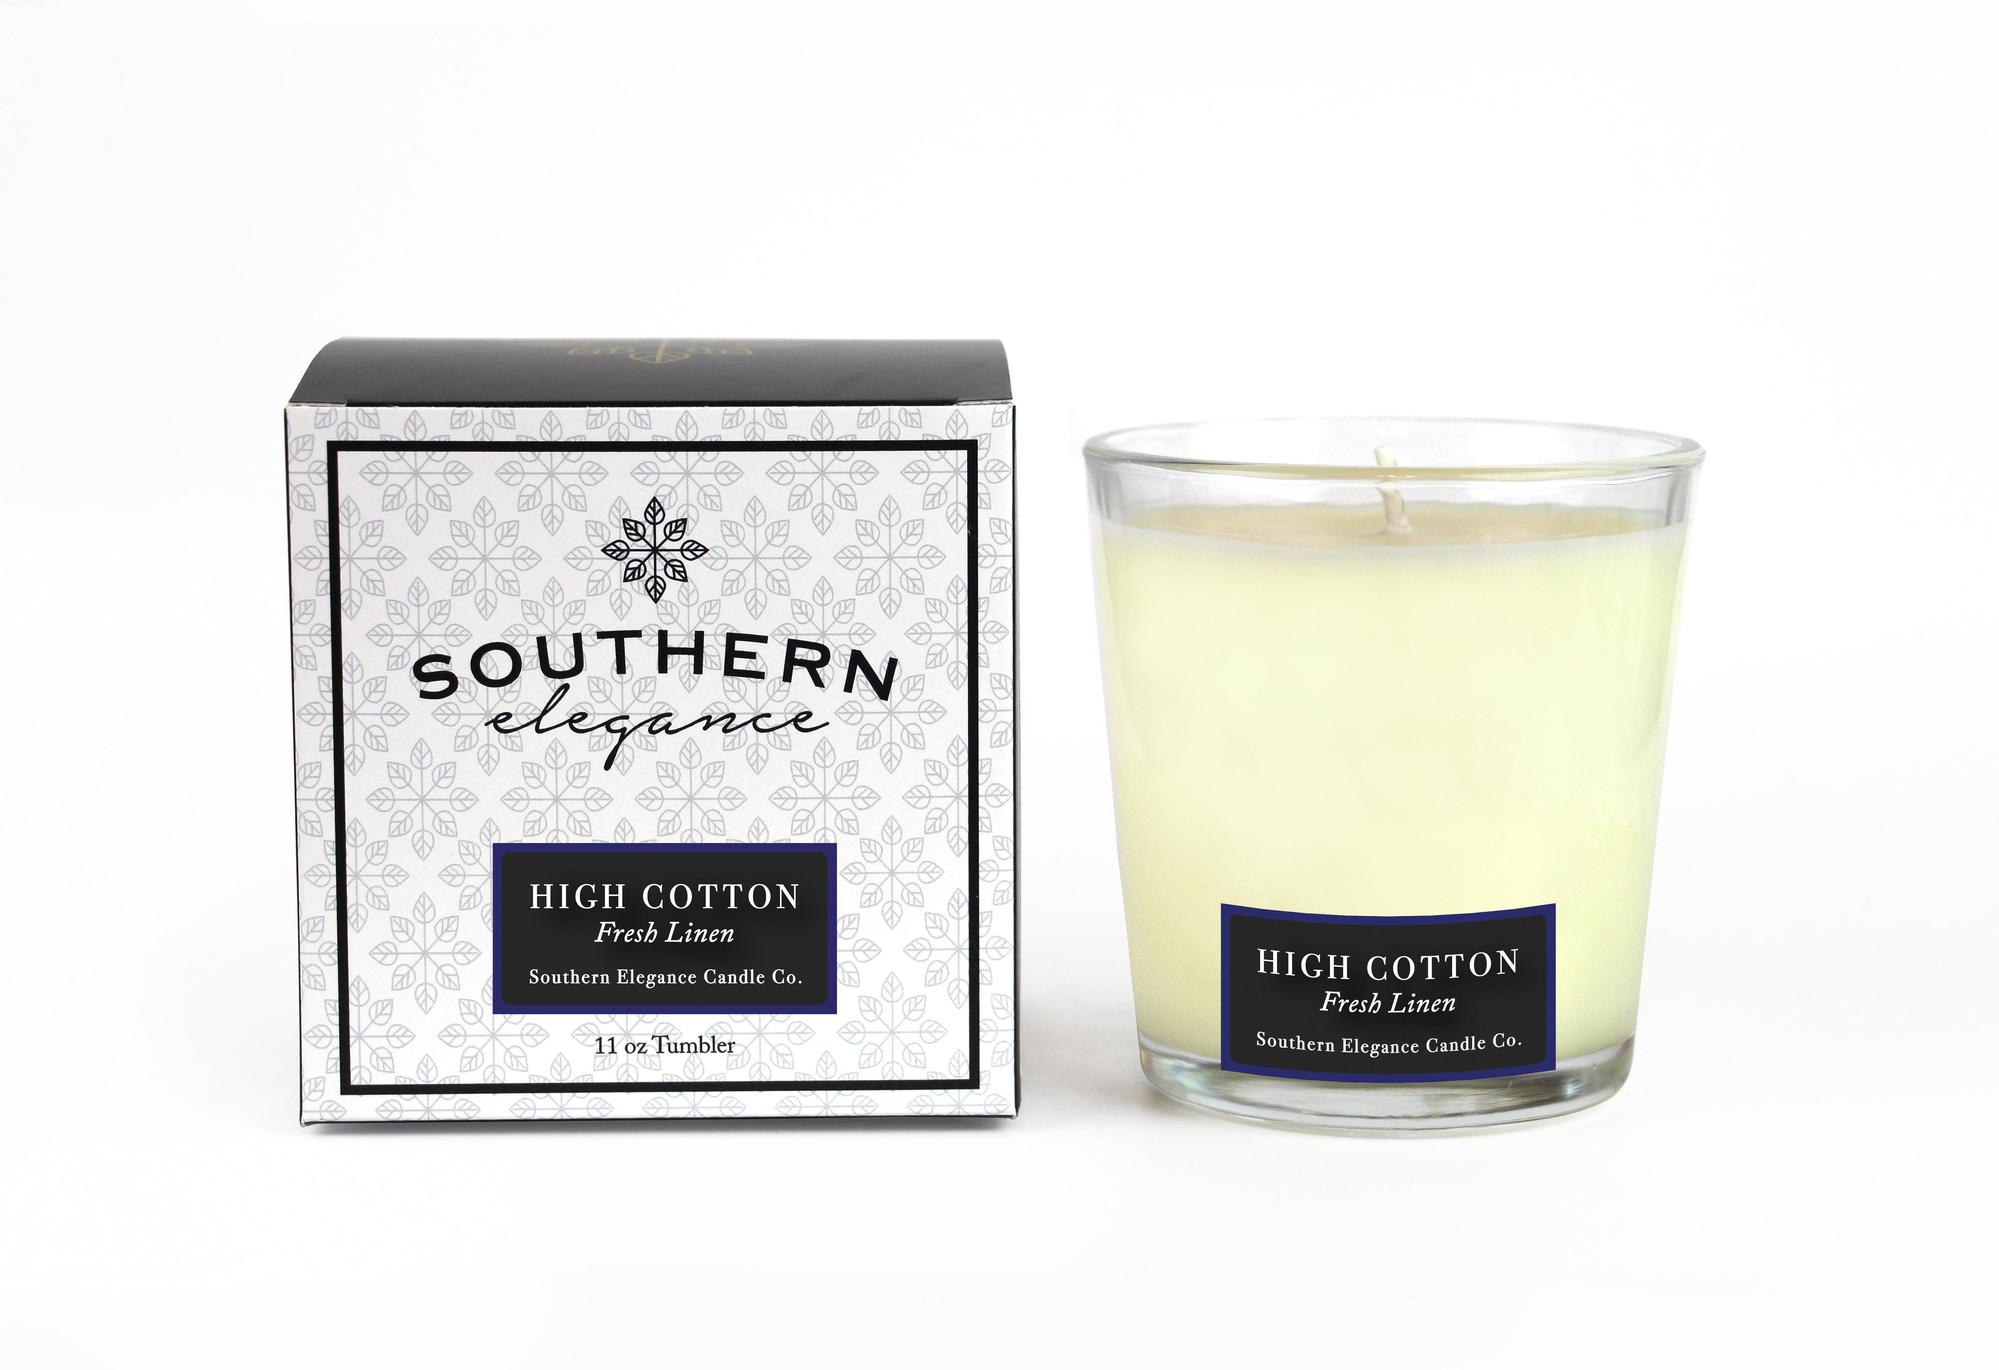 Southern Elegance Candle Co. High Cotton Tumbler Candle